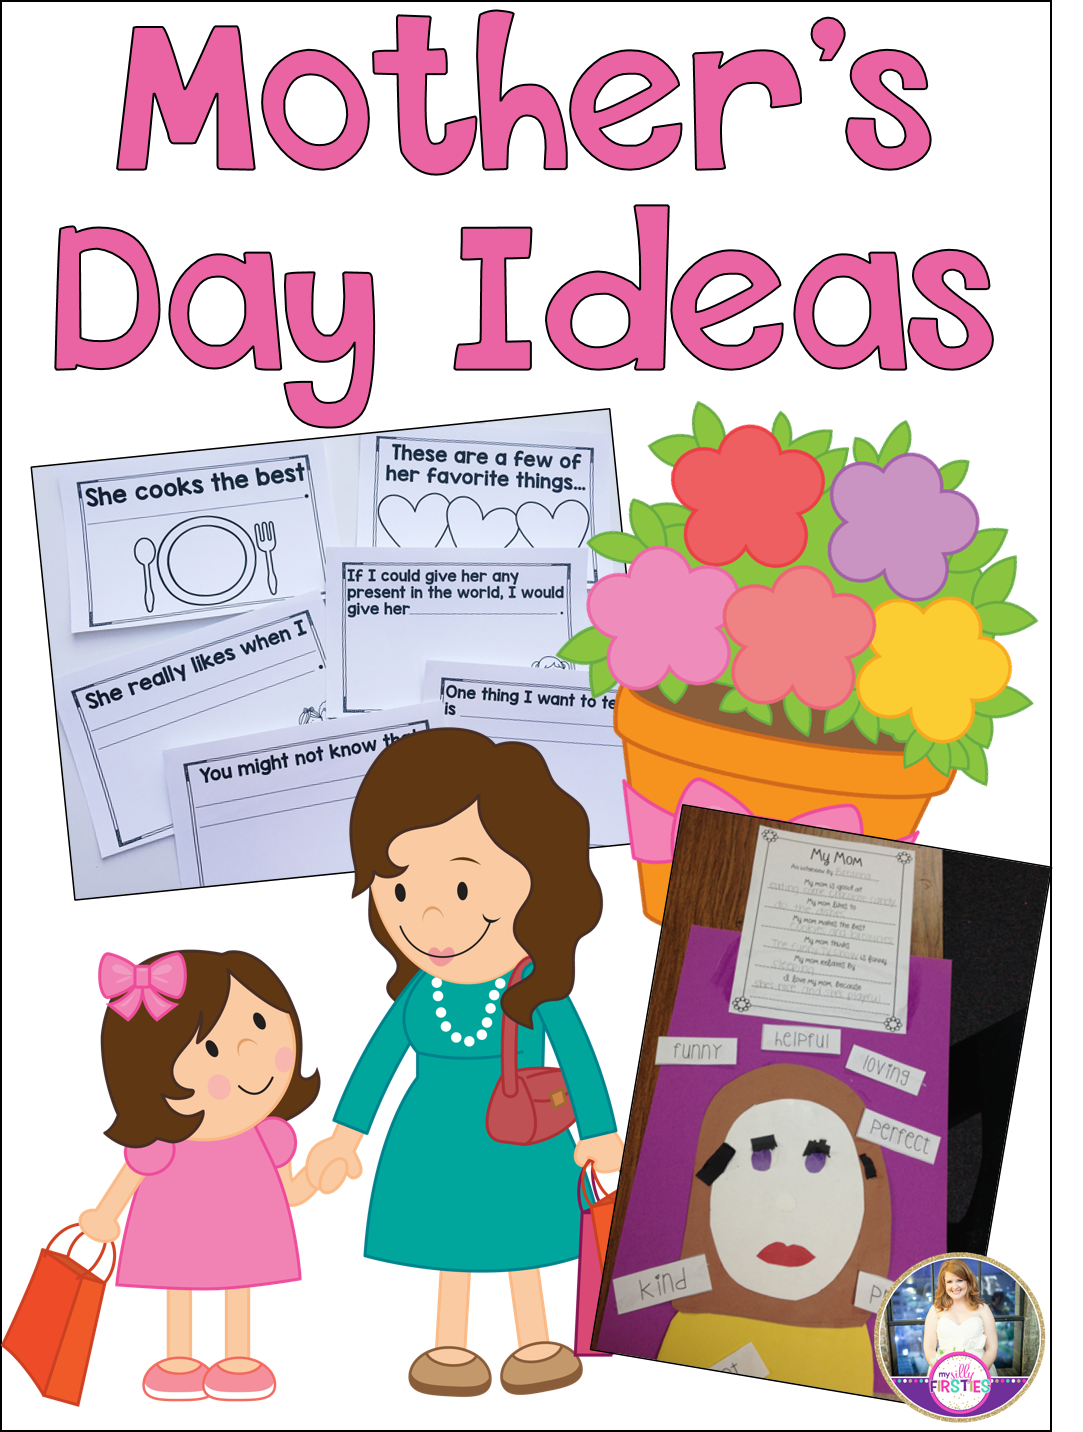 Aunt clipart working mom. Mother s day ideas